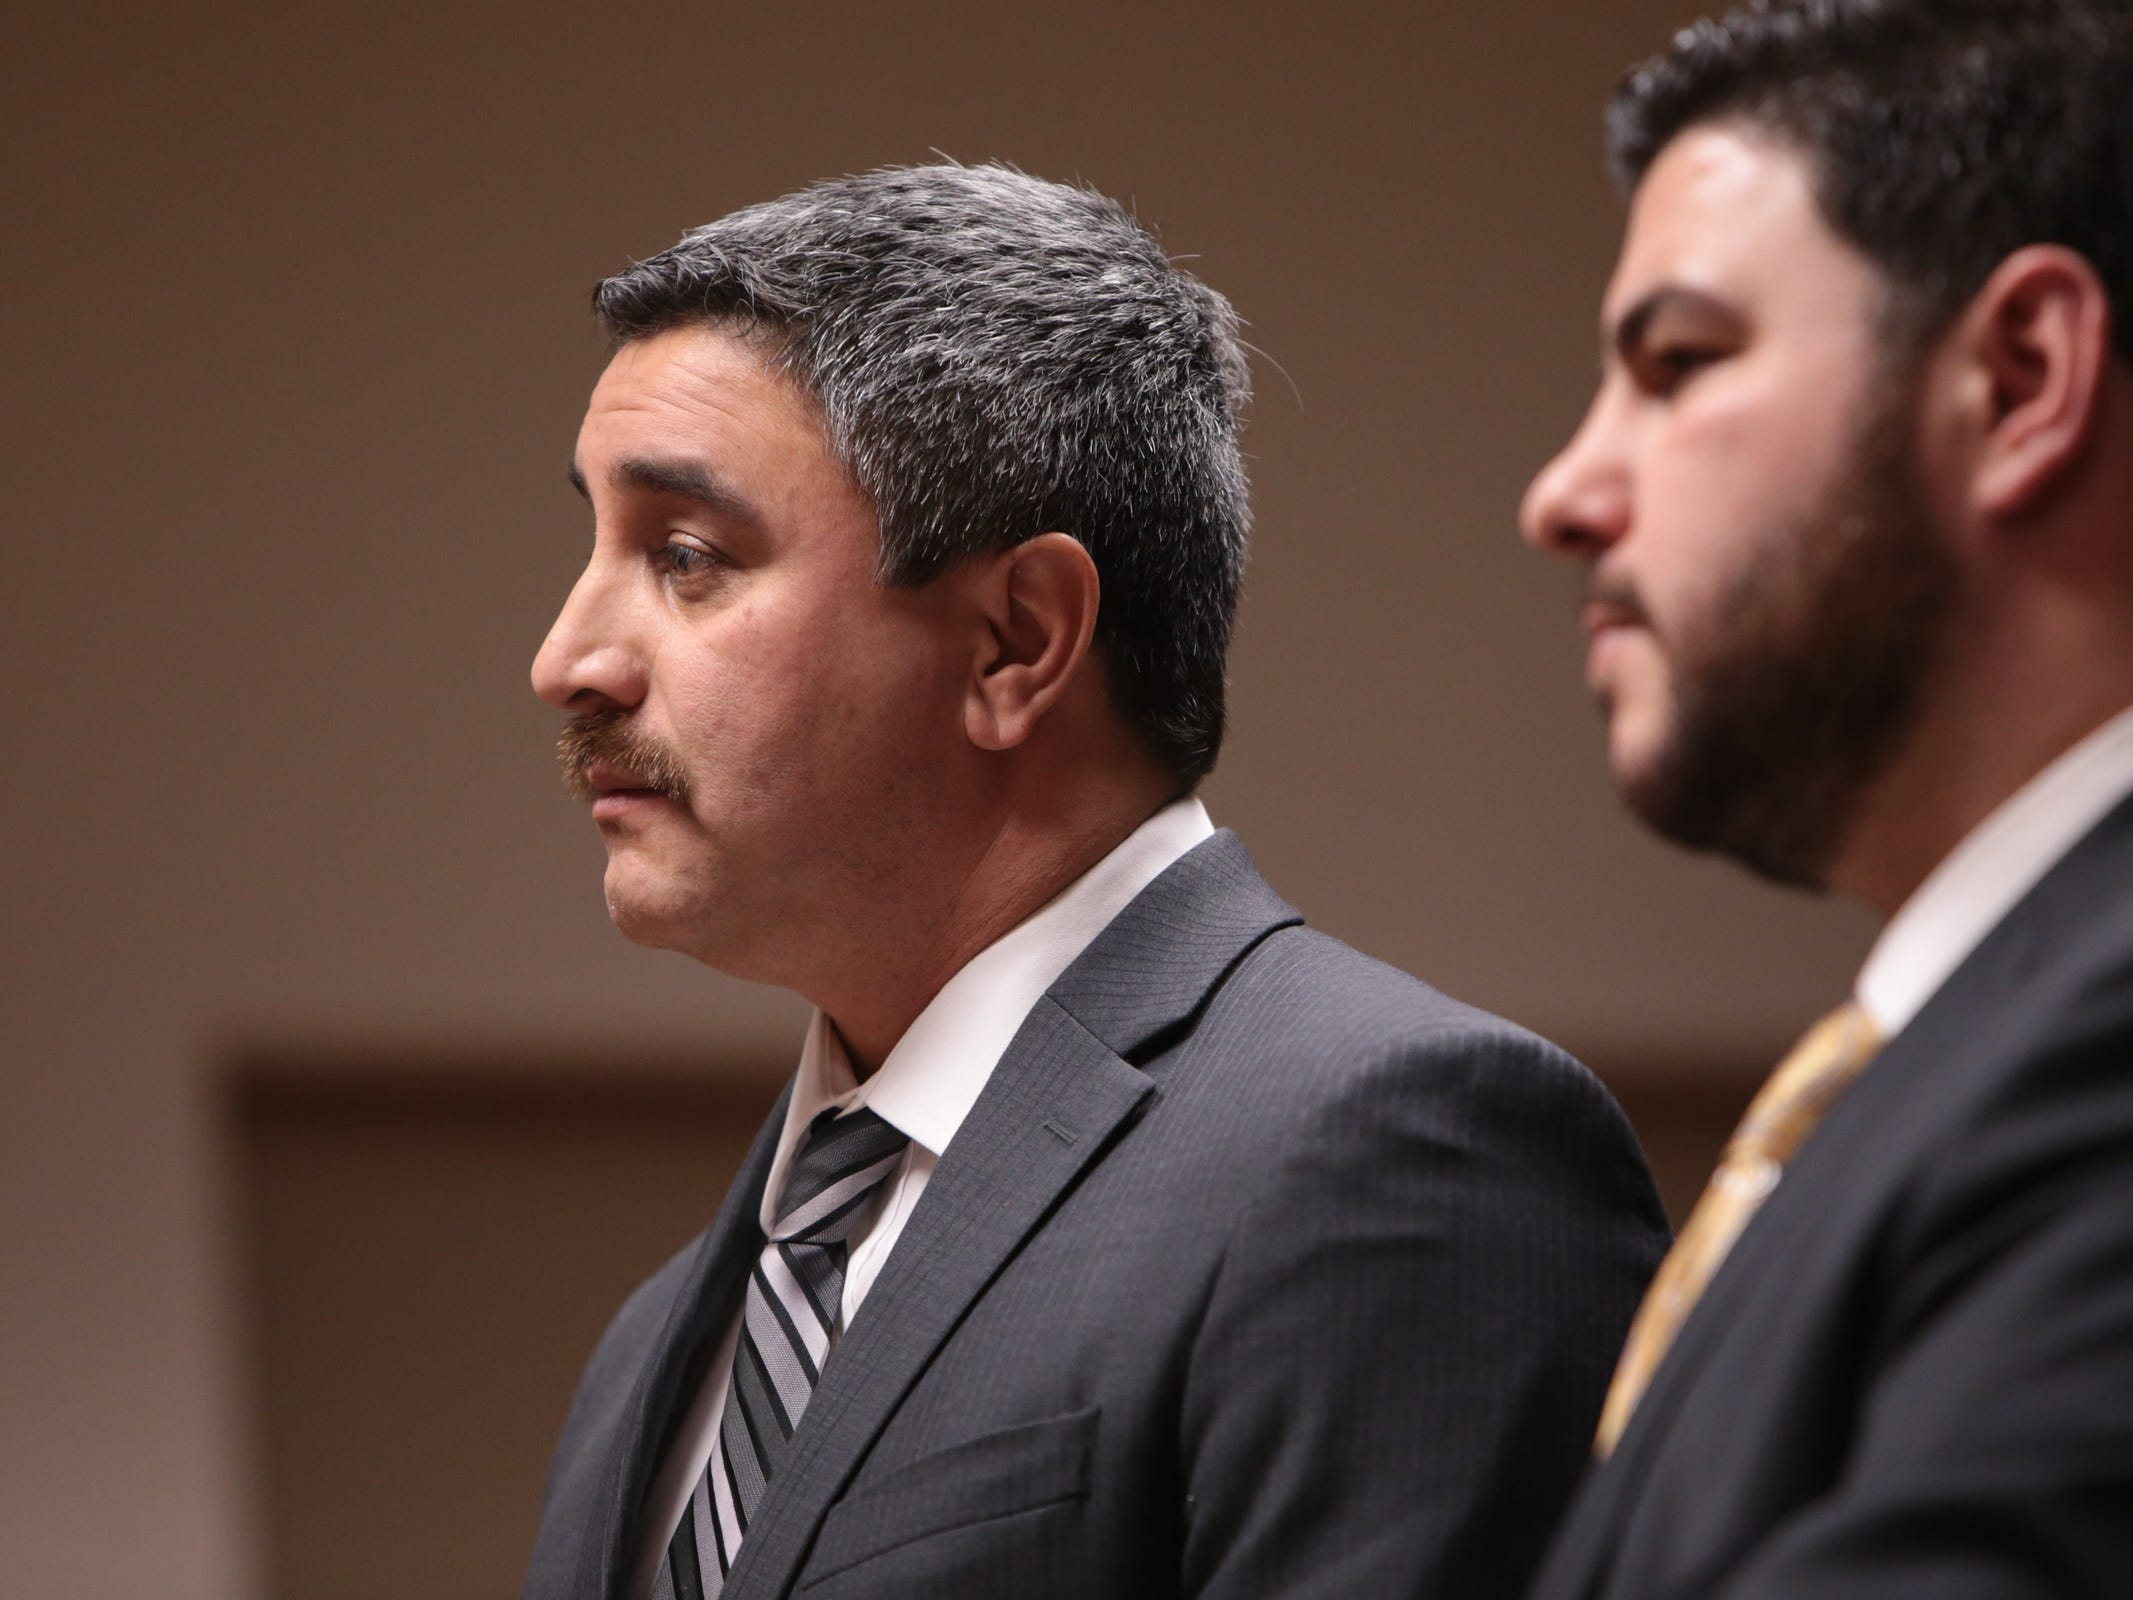 Water crisis charges dismissed against former Flint utilities director